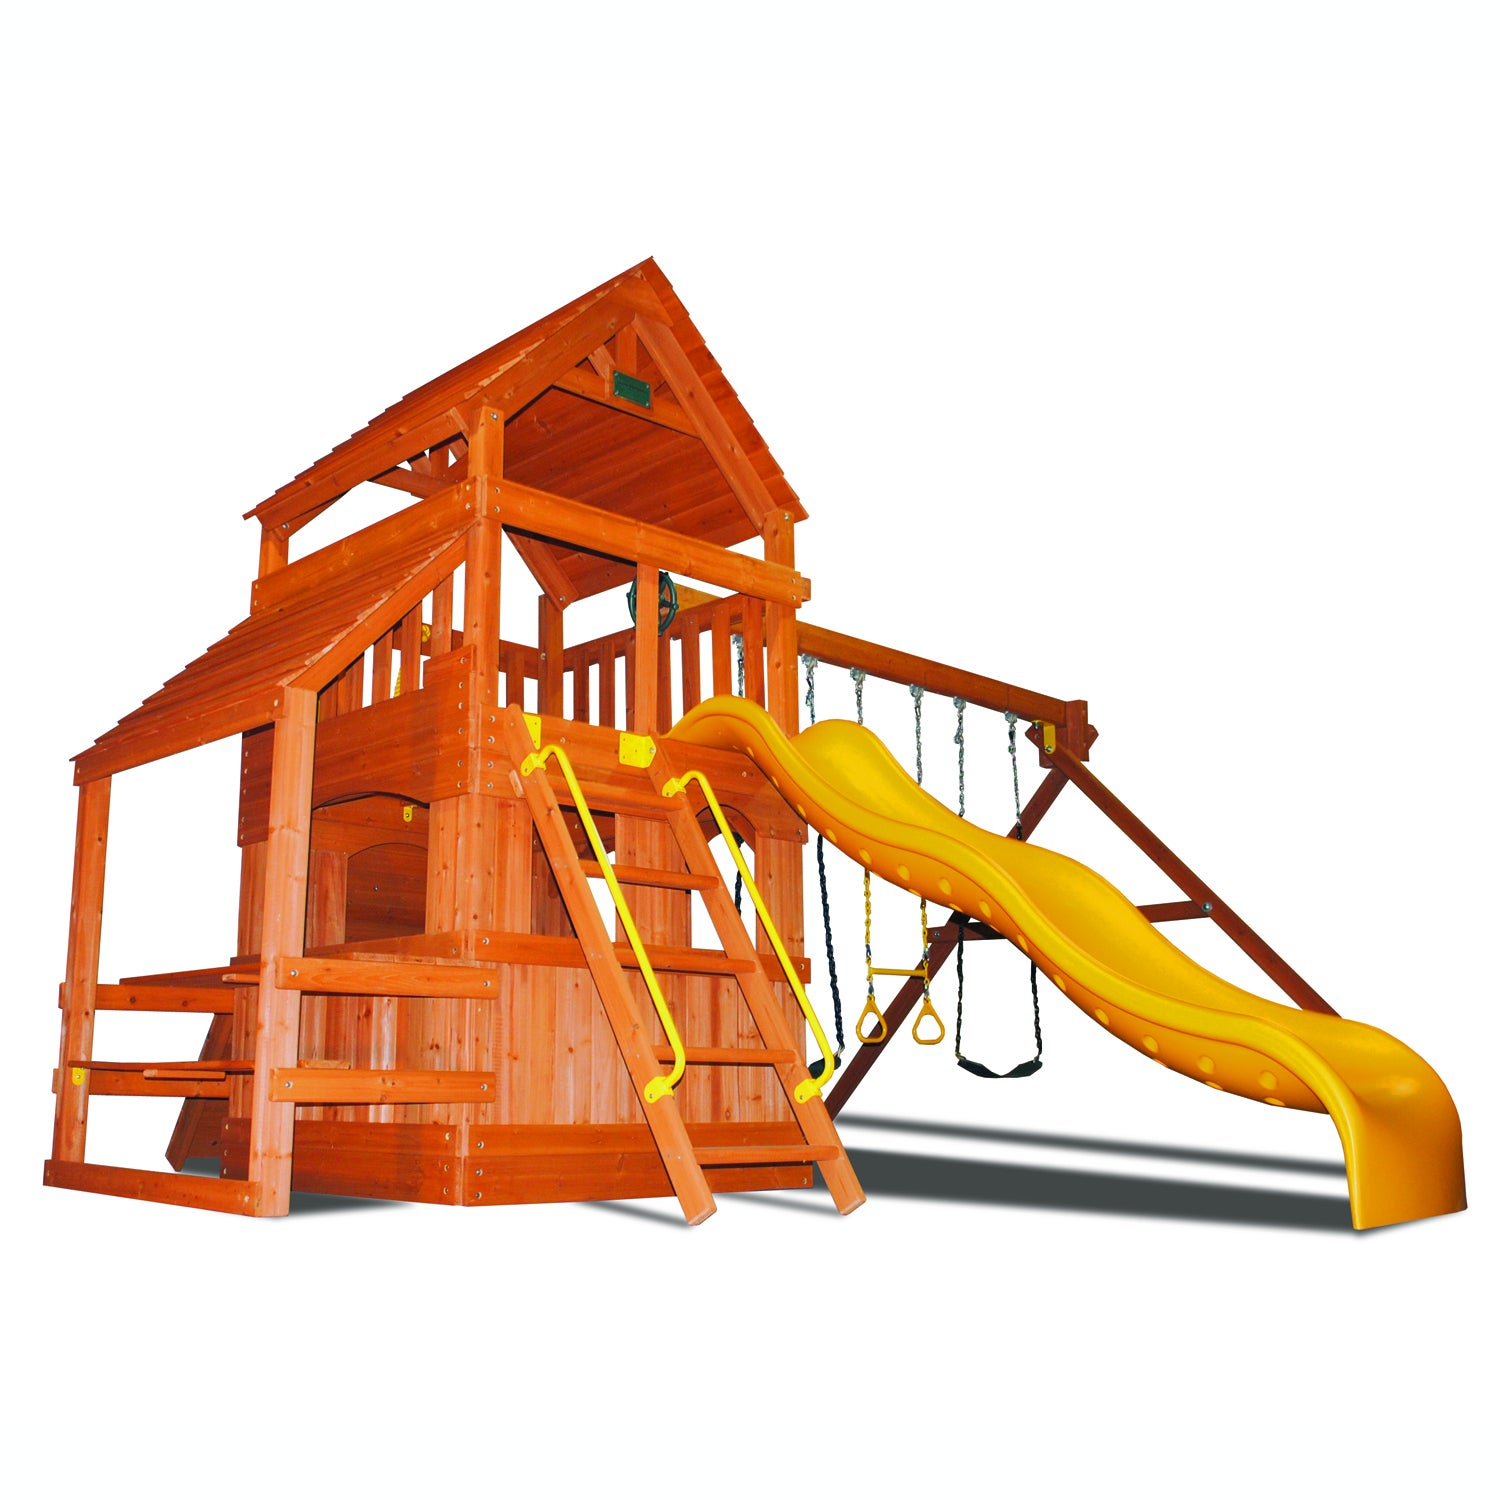 KidWise Superior Play Systems Original Fort Hangout Wooden Swing Set at Sears.com